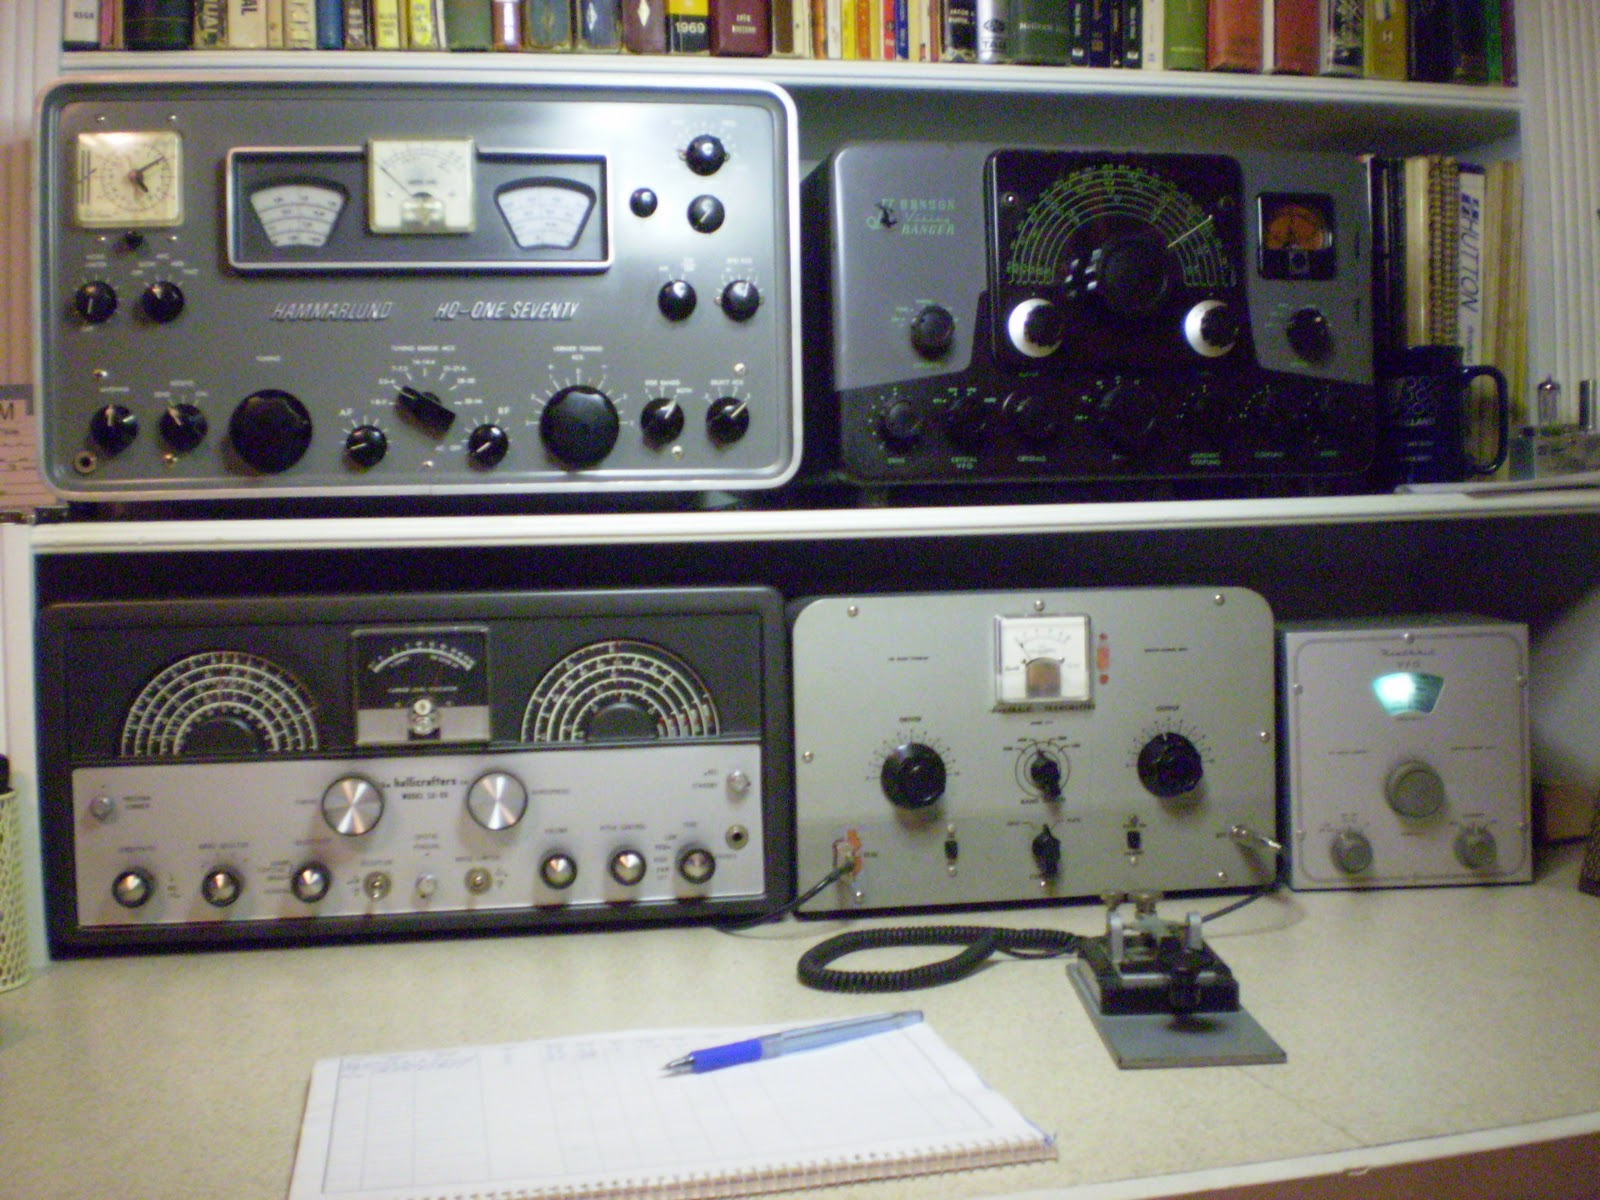 Viking Ranger on the top right and SX-100 on bottom left.